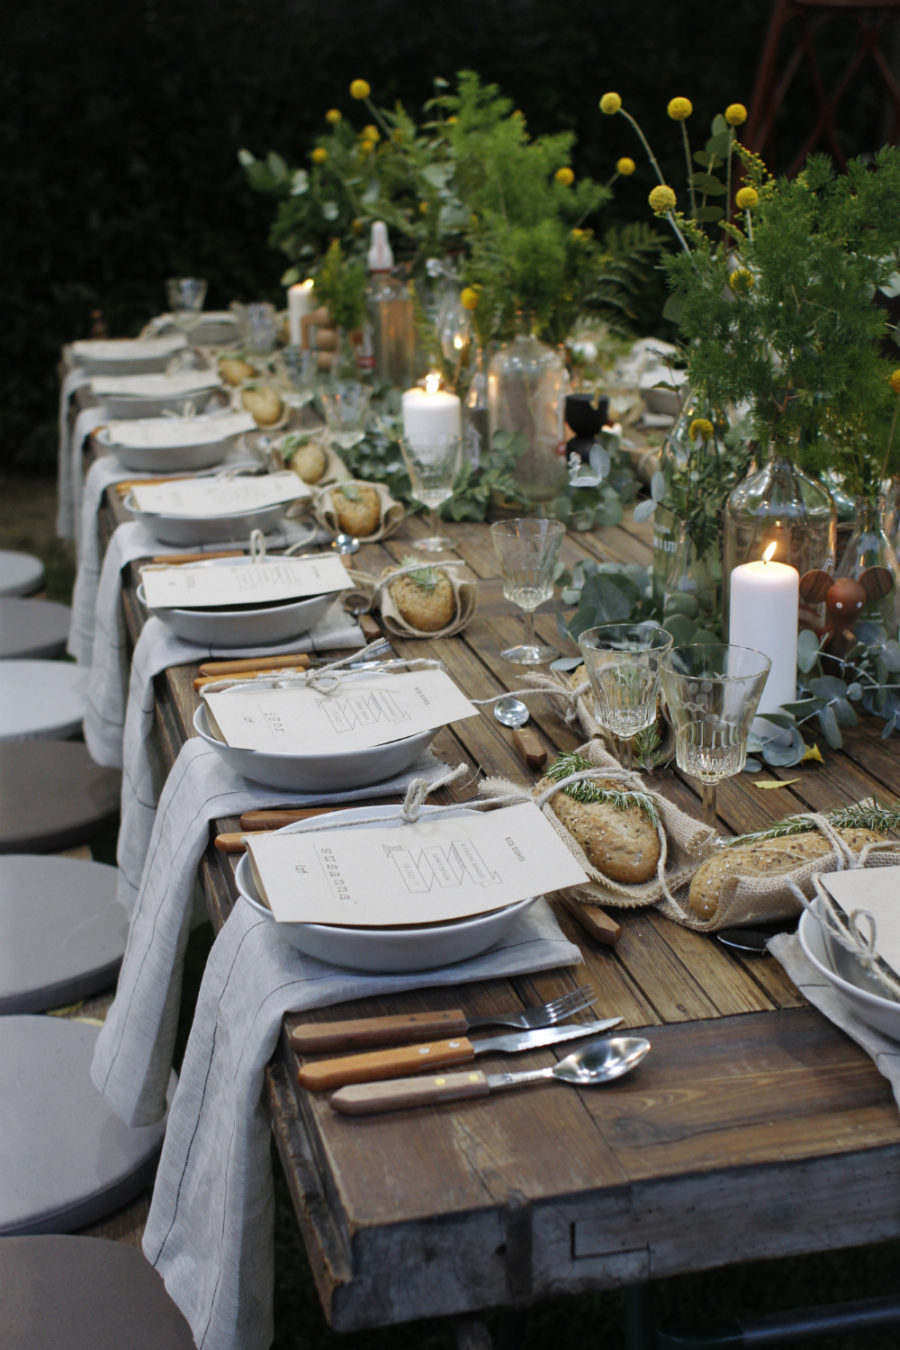 Garden party table